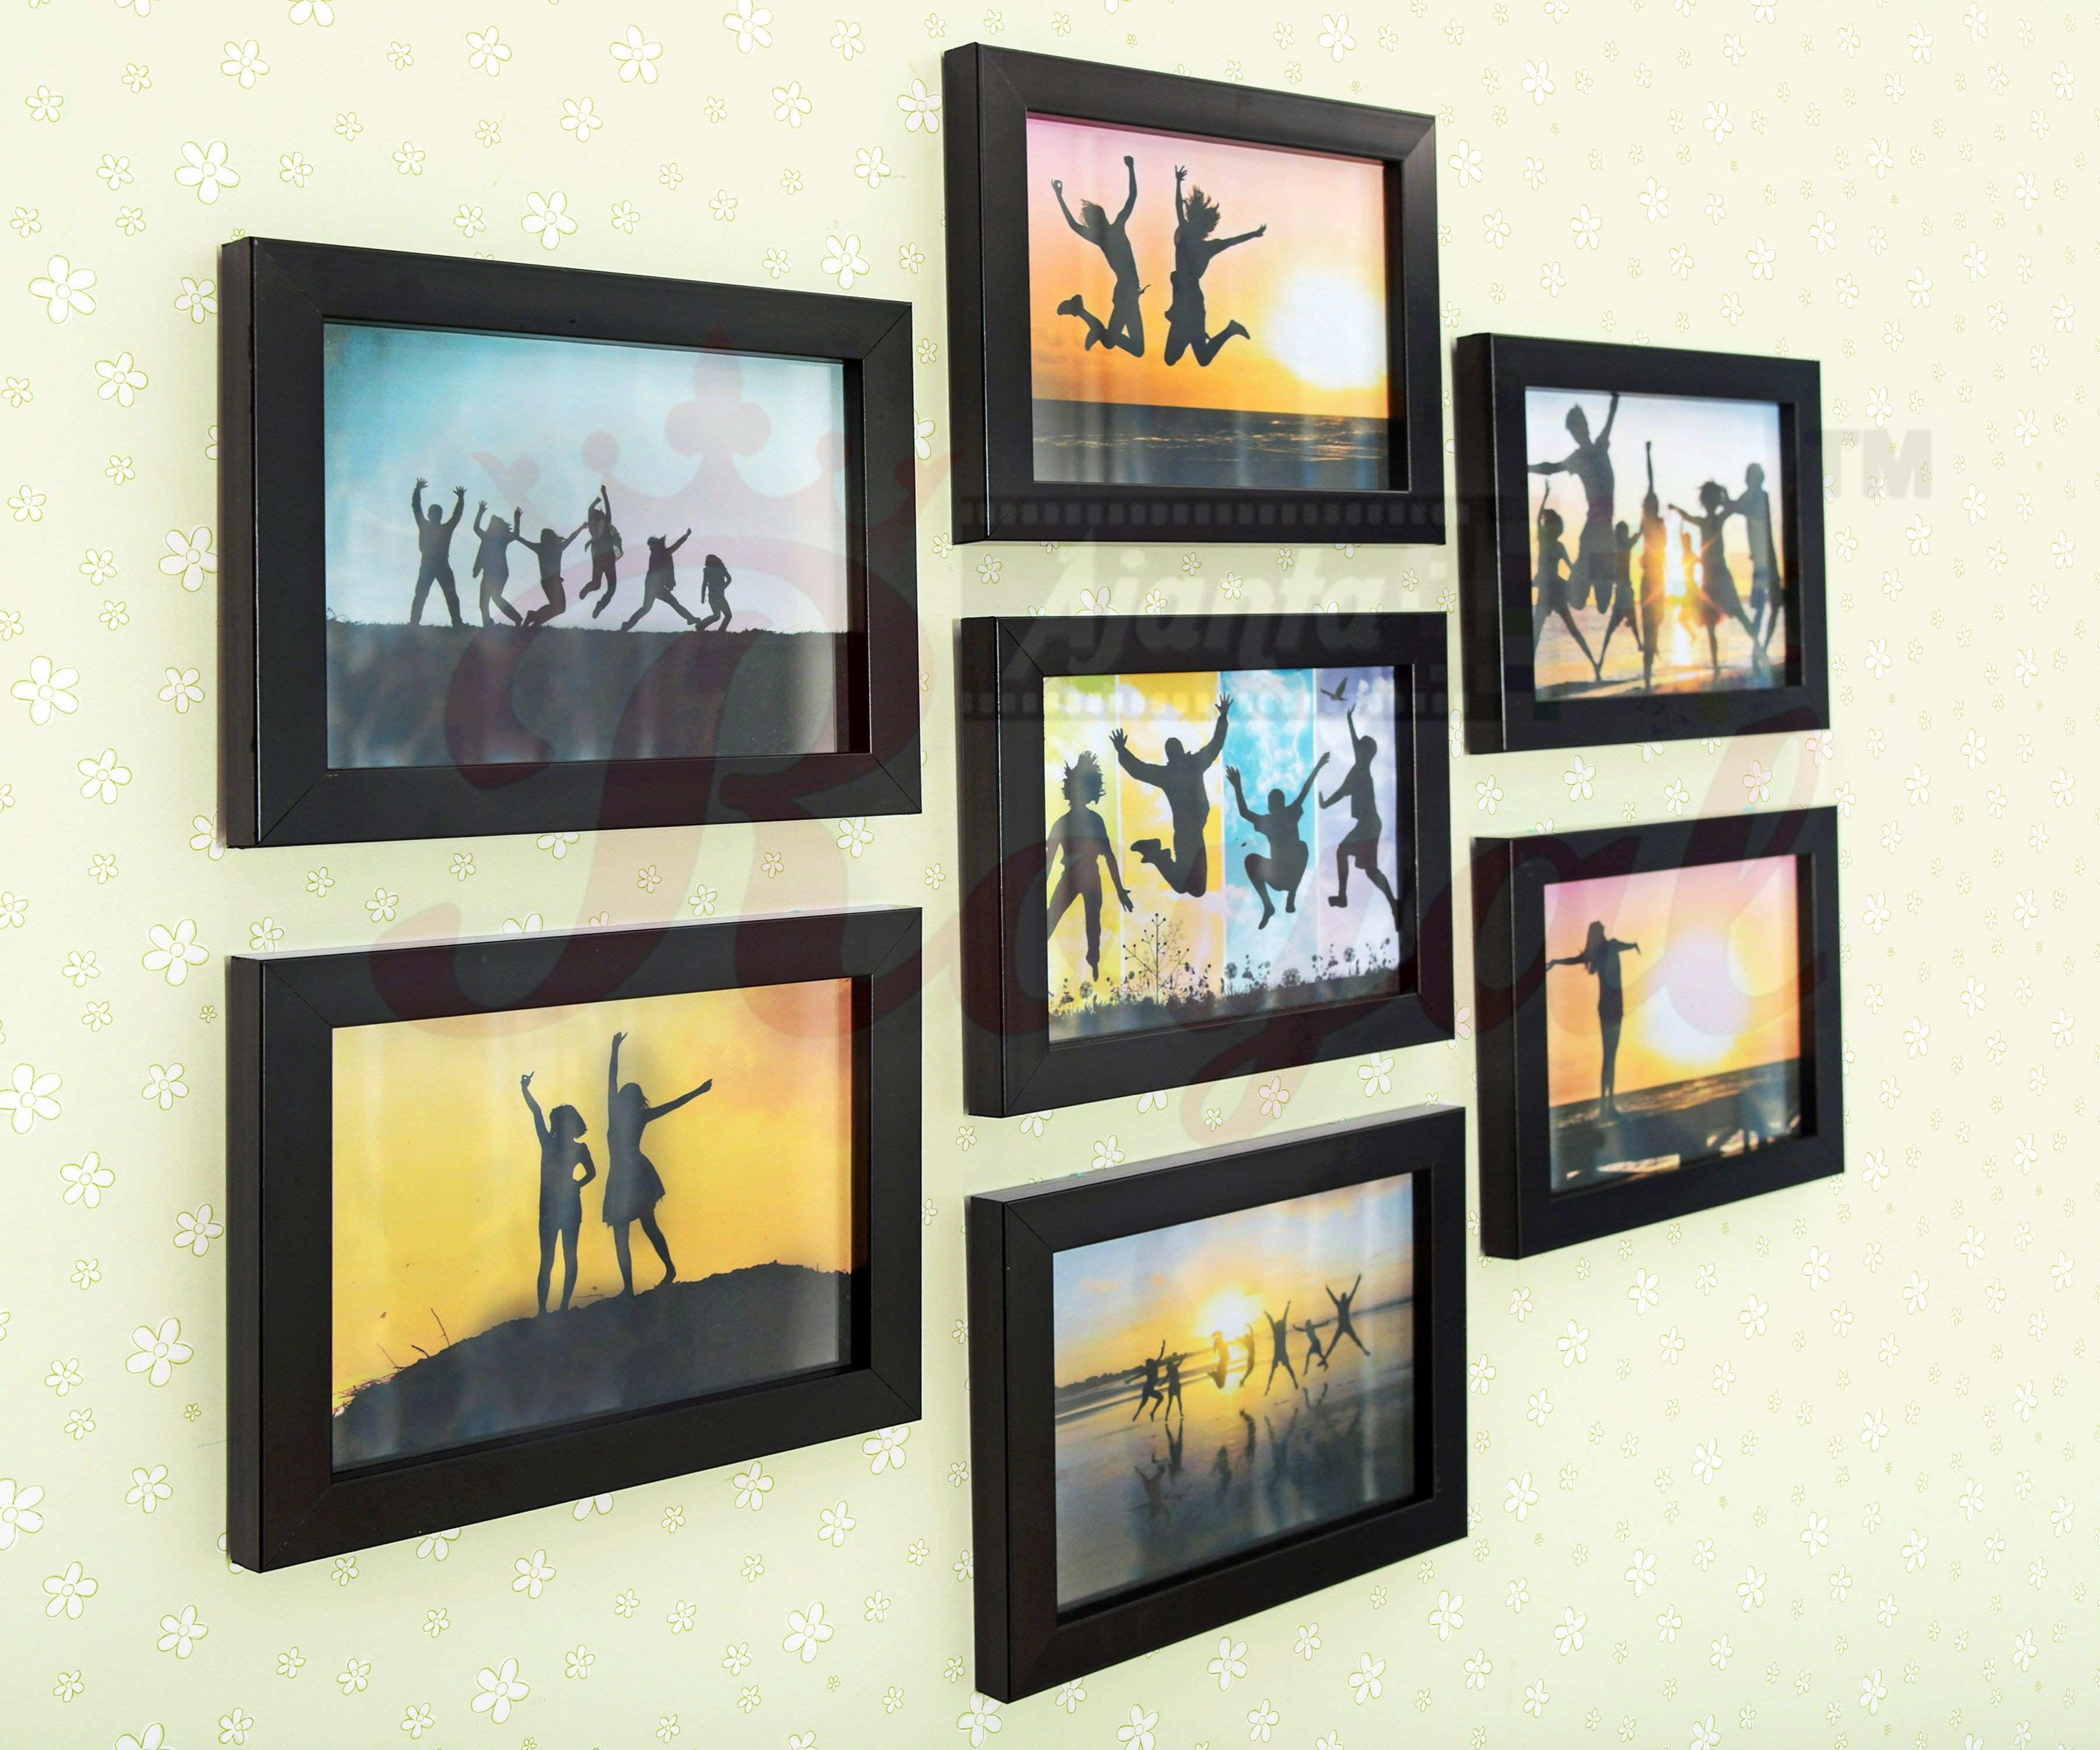 Metal Hanging Picture Frames Inspirational Unique How to Hang